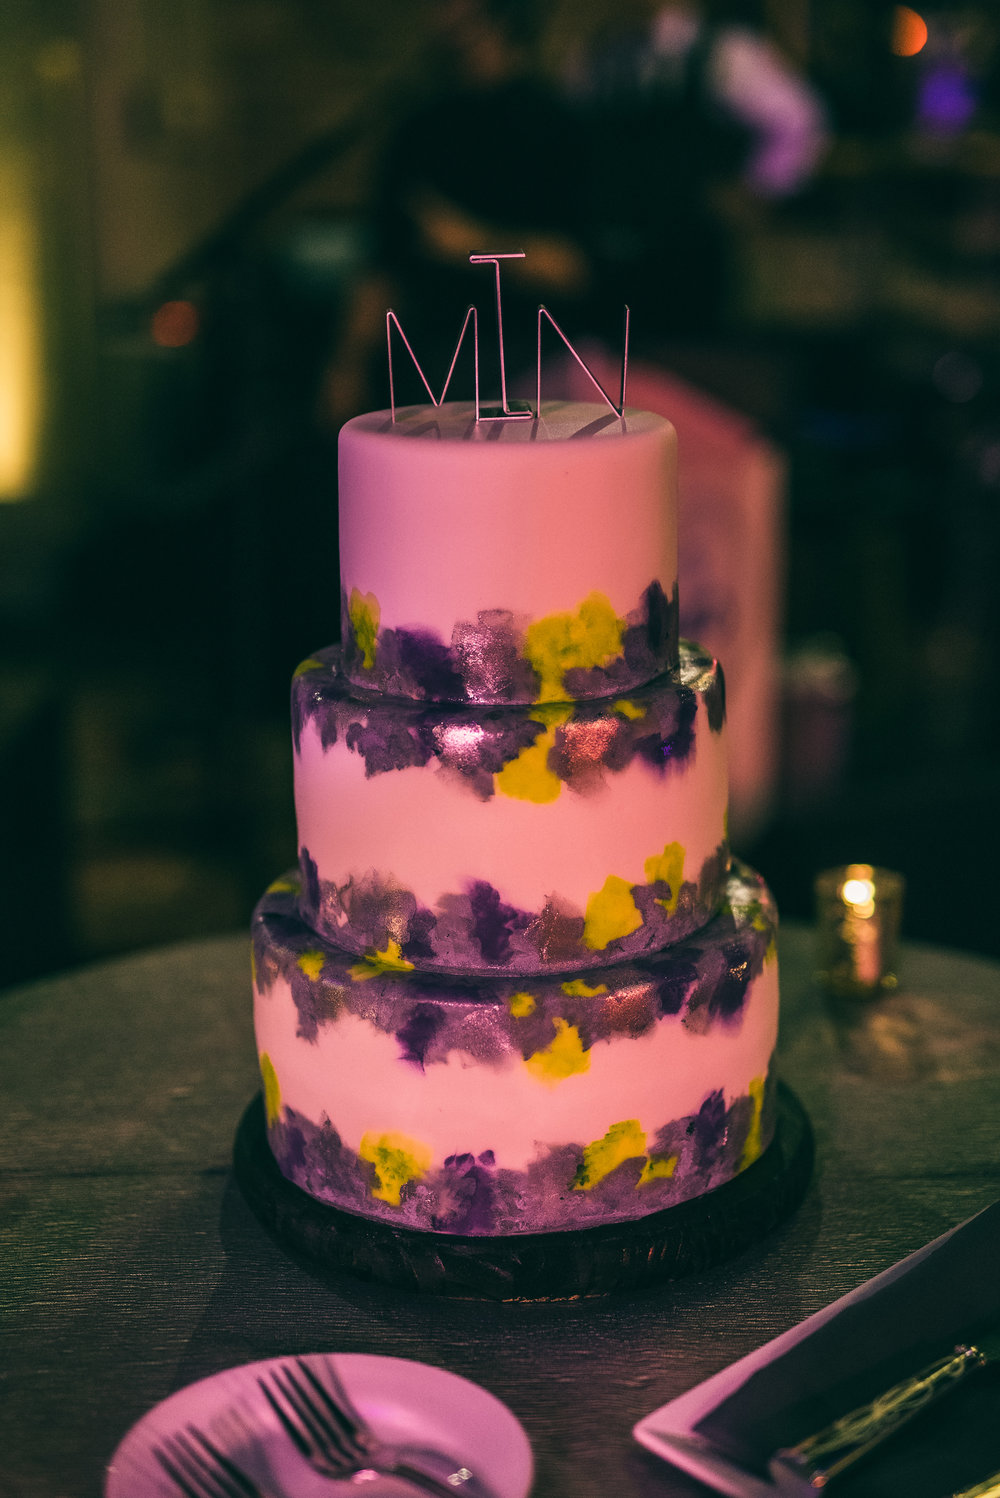 Hand painted three tier fondant wedding cake, River Roast Social House in Chicago